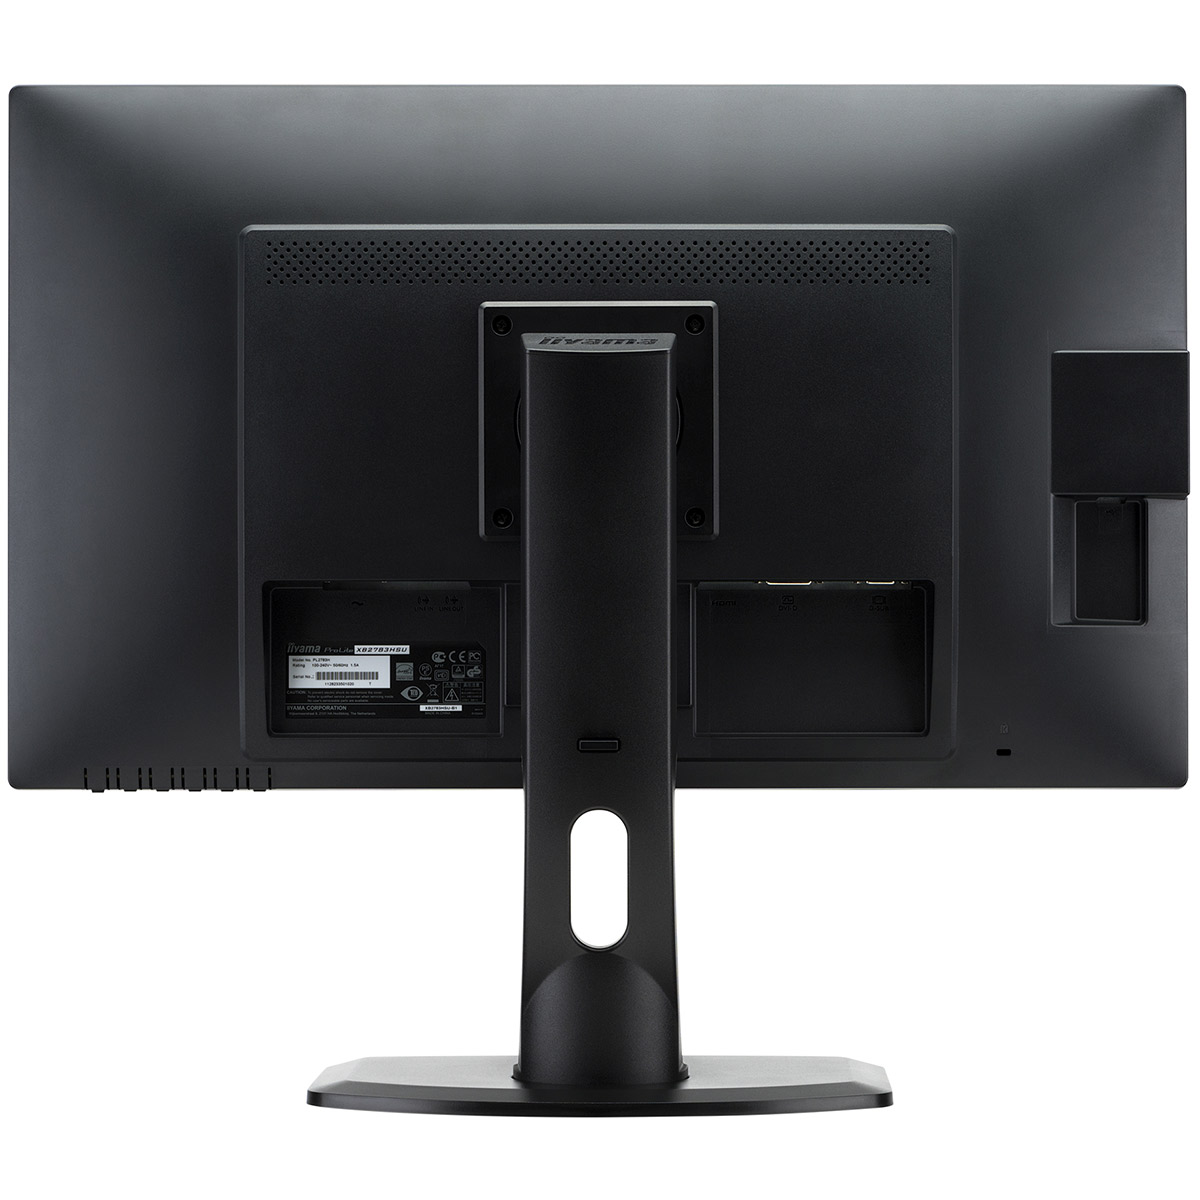 iiyama 27 led prolite xb2783hsu b1 ecran pc iiyama sur. Black Bedroom Furniture Sets. Home Design Ideas